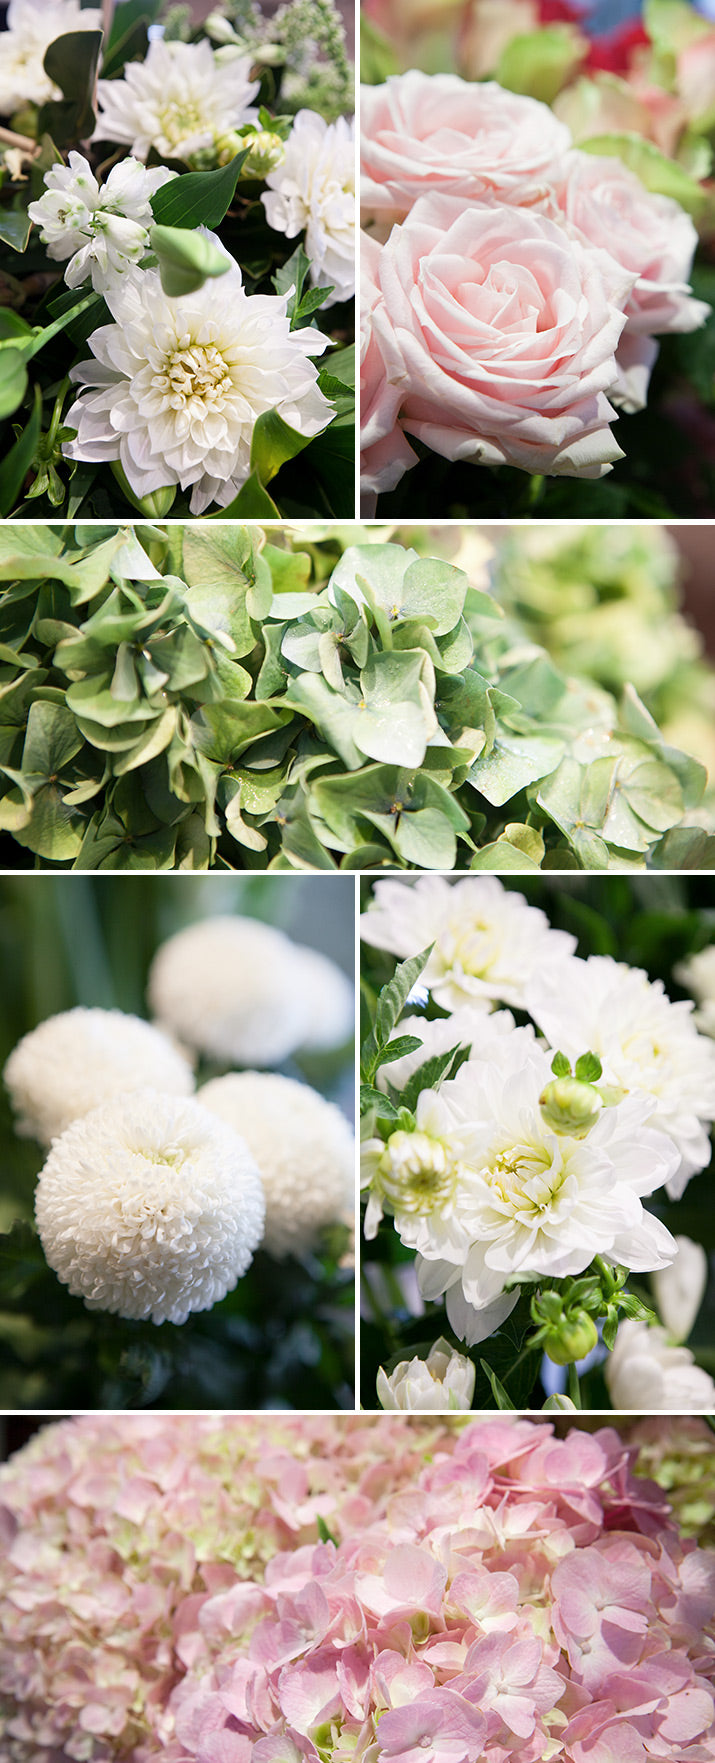 A collection of close ups of white flowers.